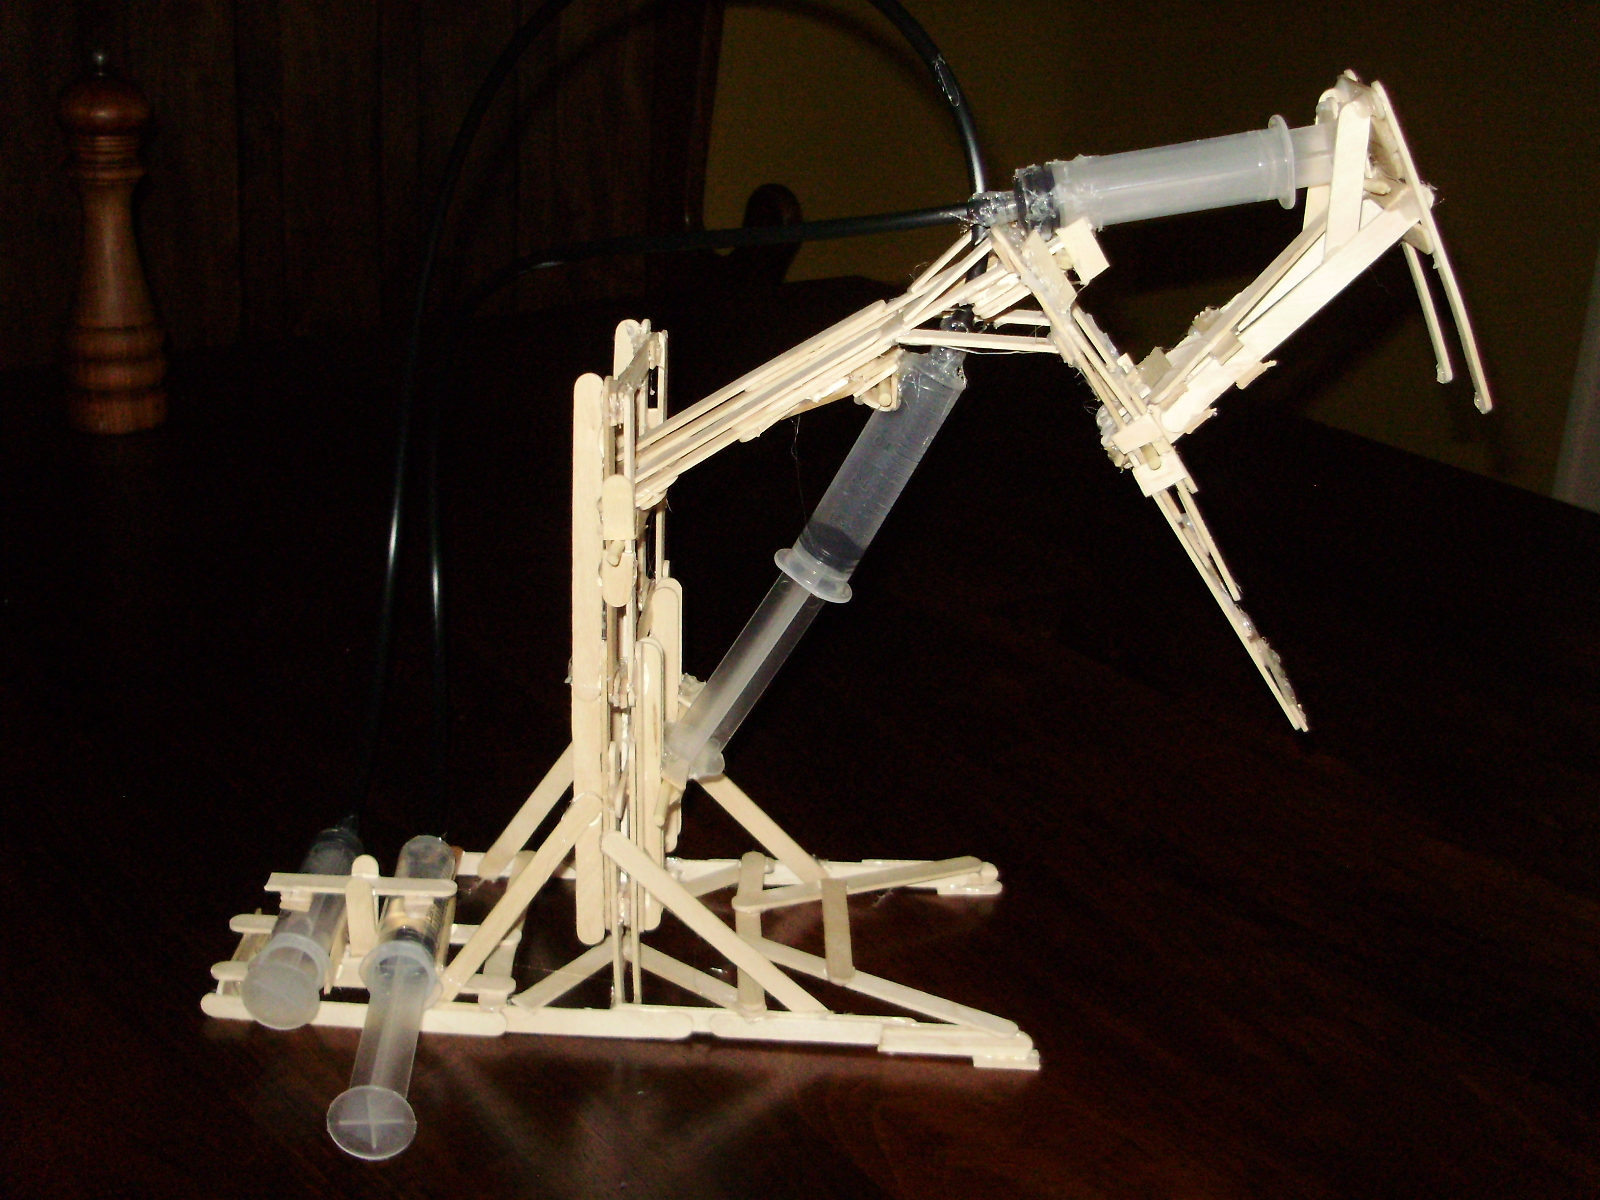 Popsicle Stick Hydraulic ArmHydraulic Arm With Syringes